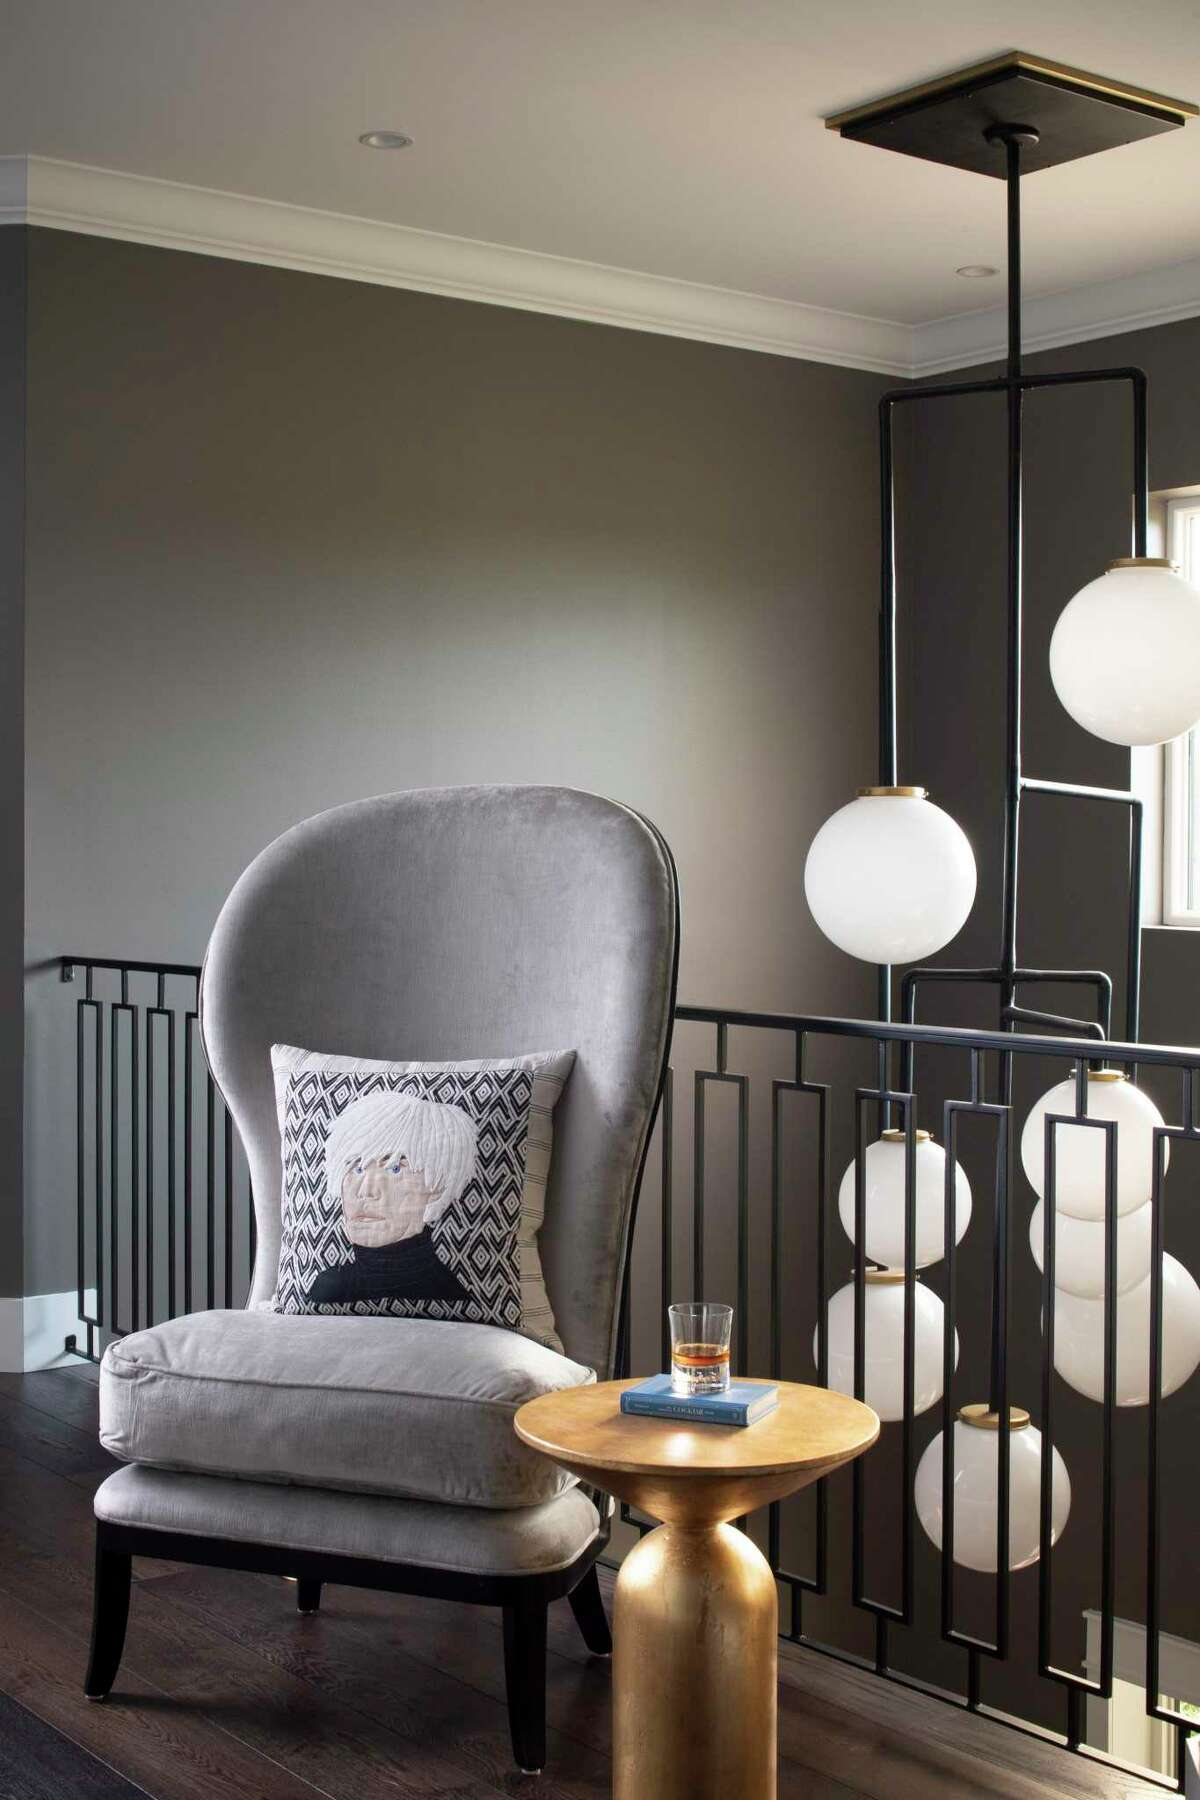 Sherwin- Williams 2021 Color of the Year is